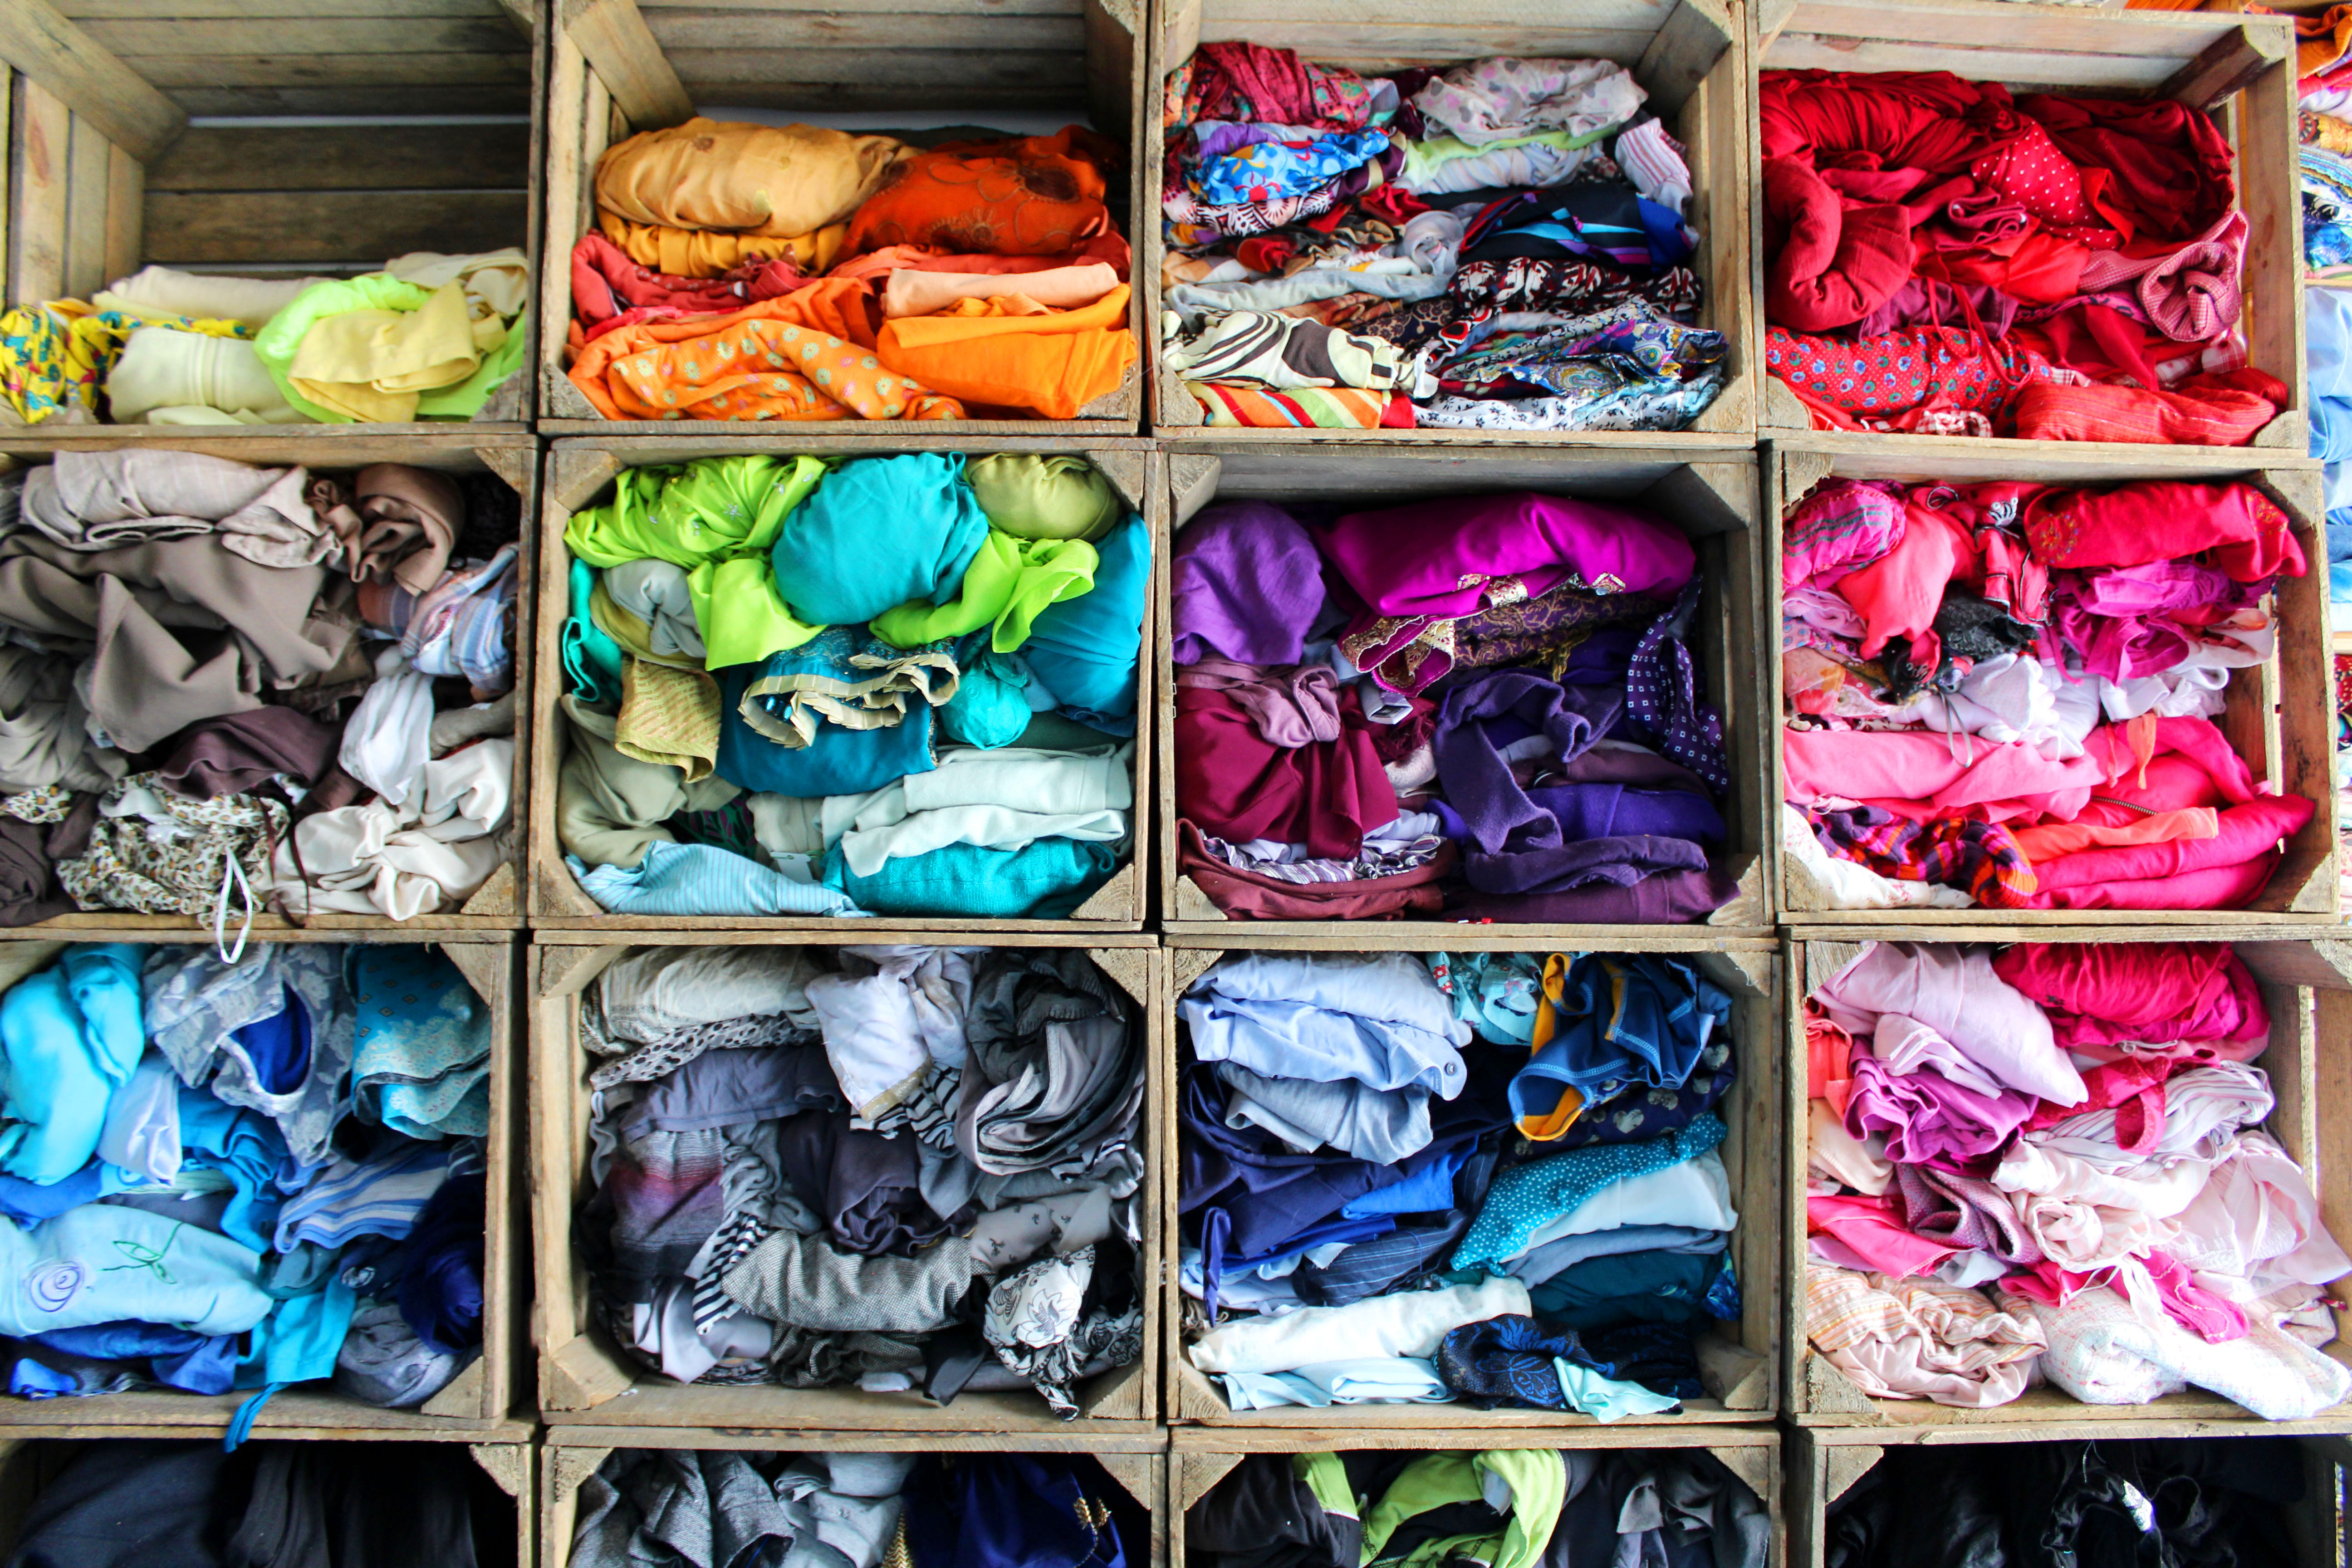 Fabric in Crates